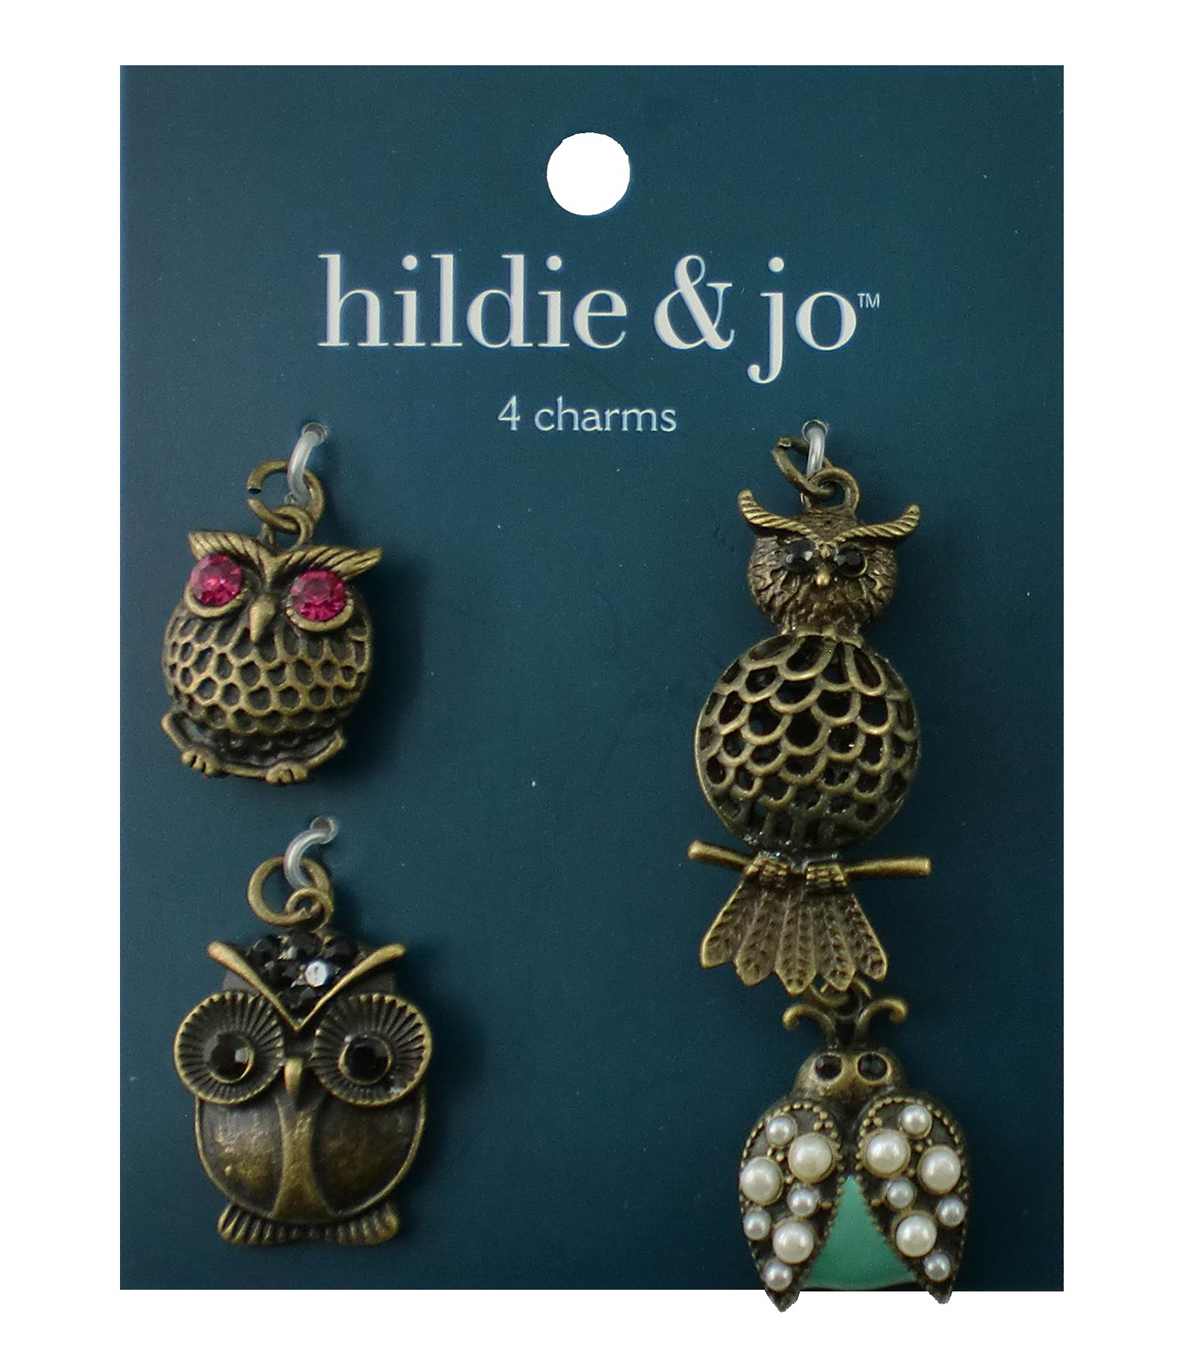 hildie & jo™ 4 Pack Owl & Bug Antique Gold Charms-Pearls, Crystals